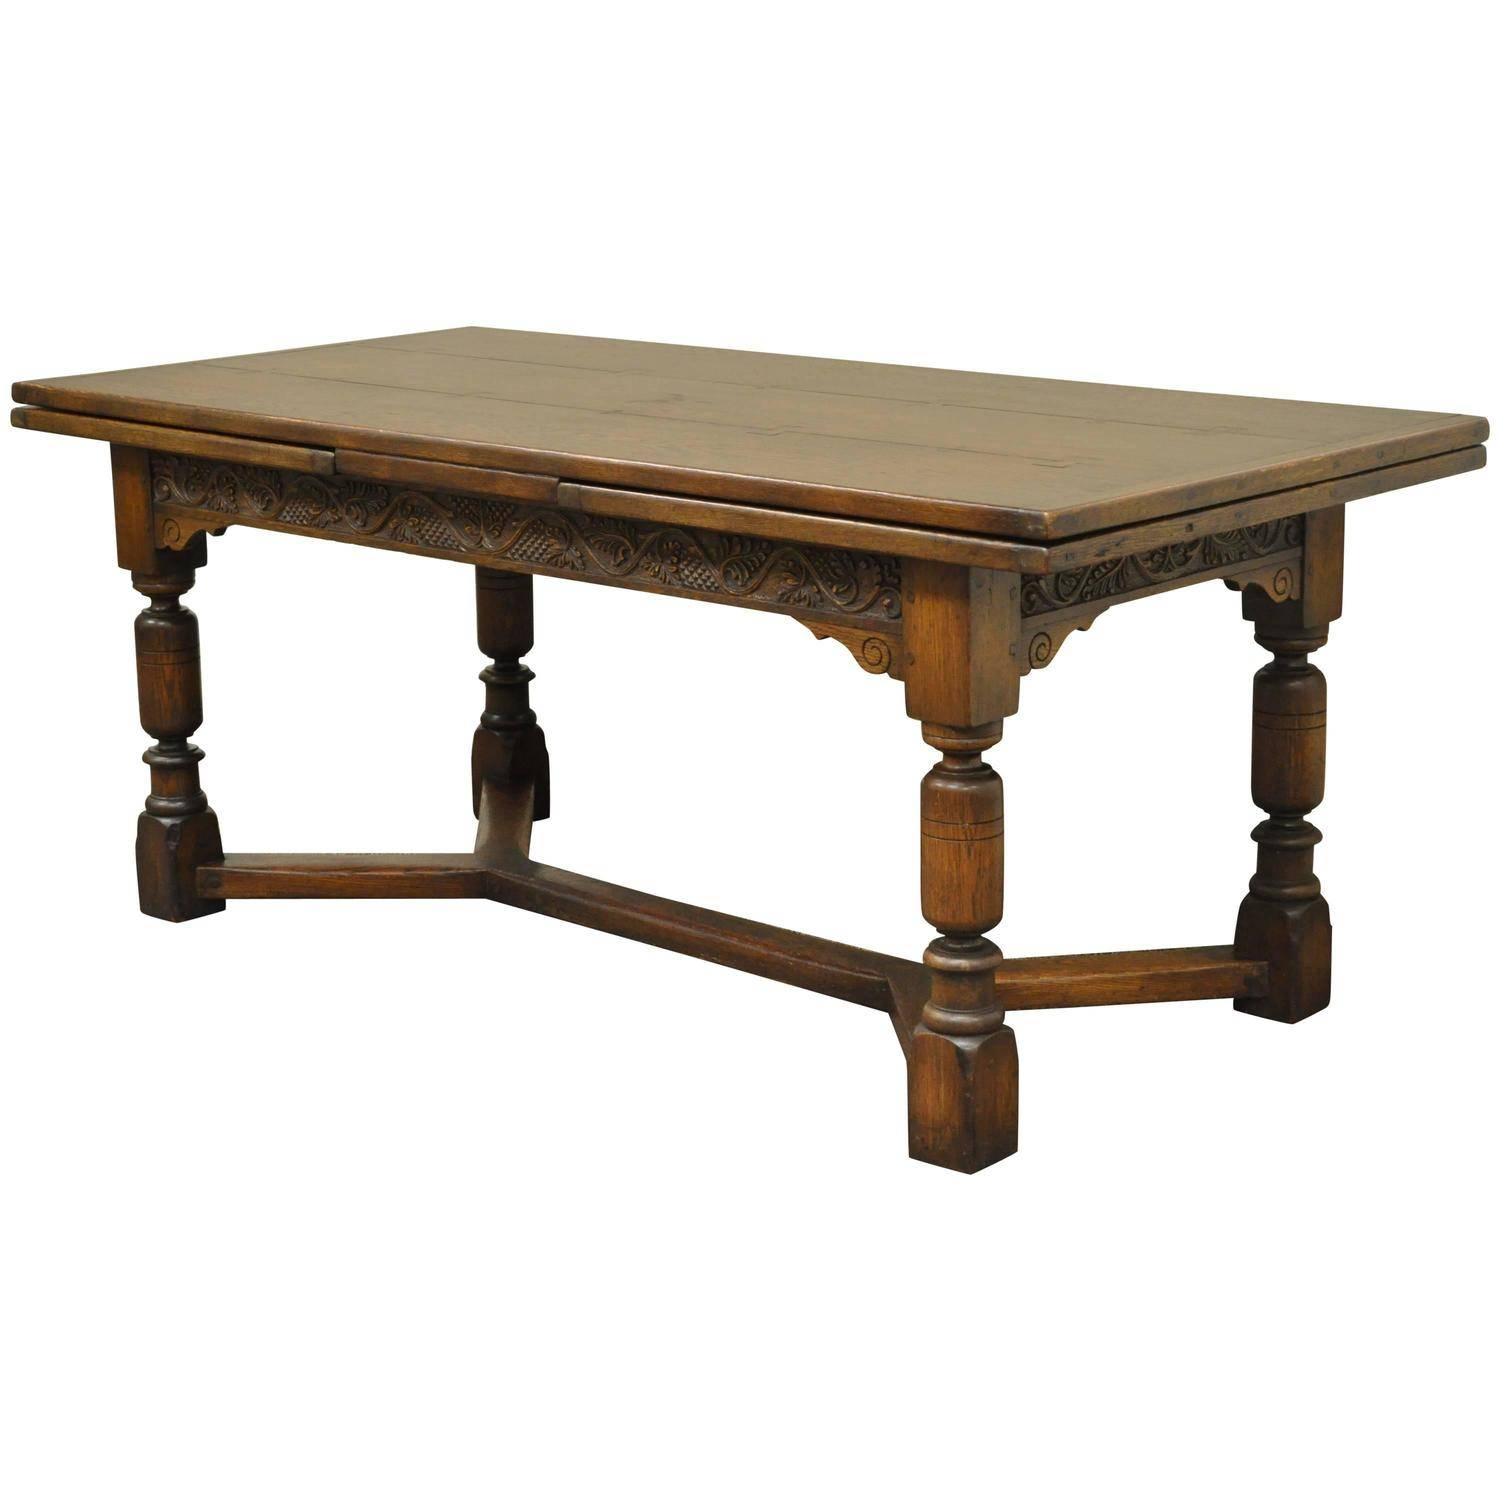 1930S Solid Carved Oak Jacobean Style Refectory Extension Plank Intended For Jacobean Coffee Tables (Image 1 of 15)